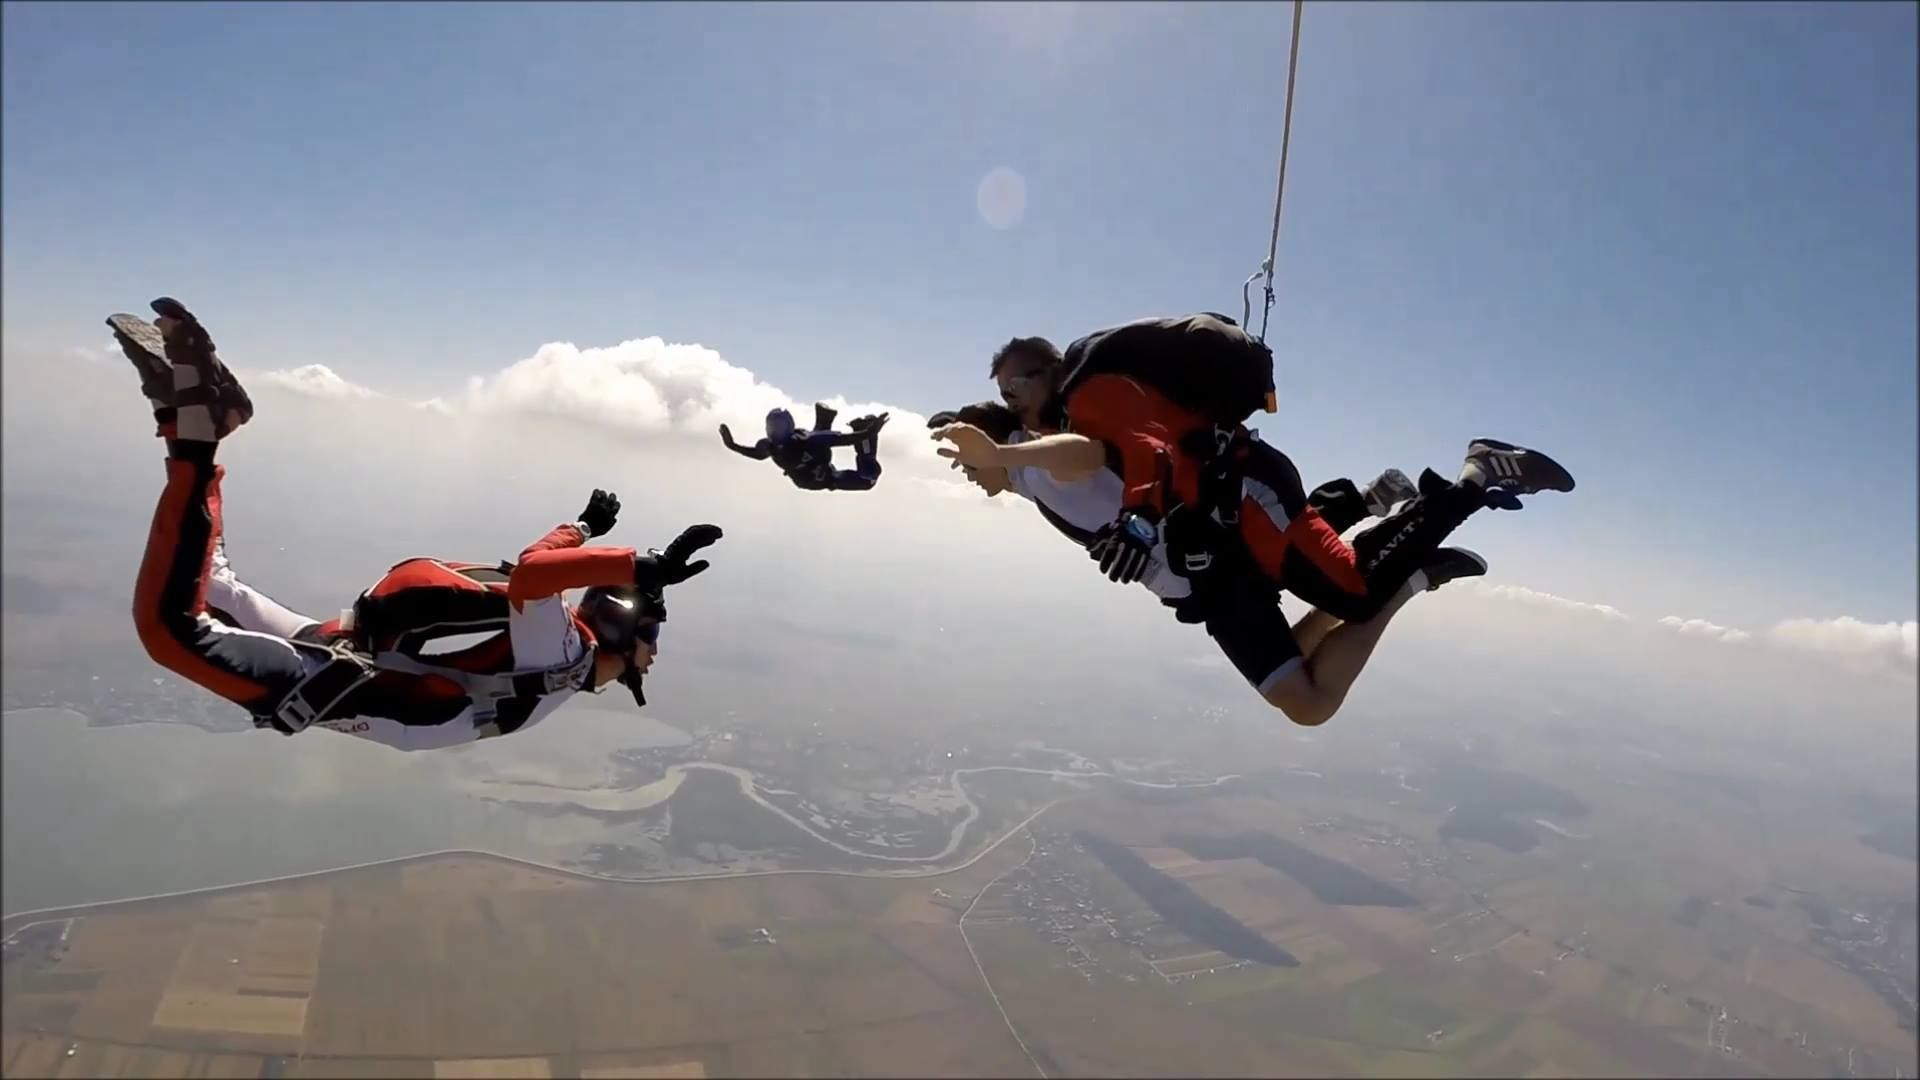 Tandem skydiving or tandem parachuting refers to a type of